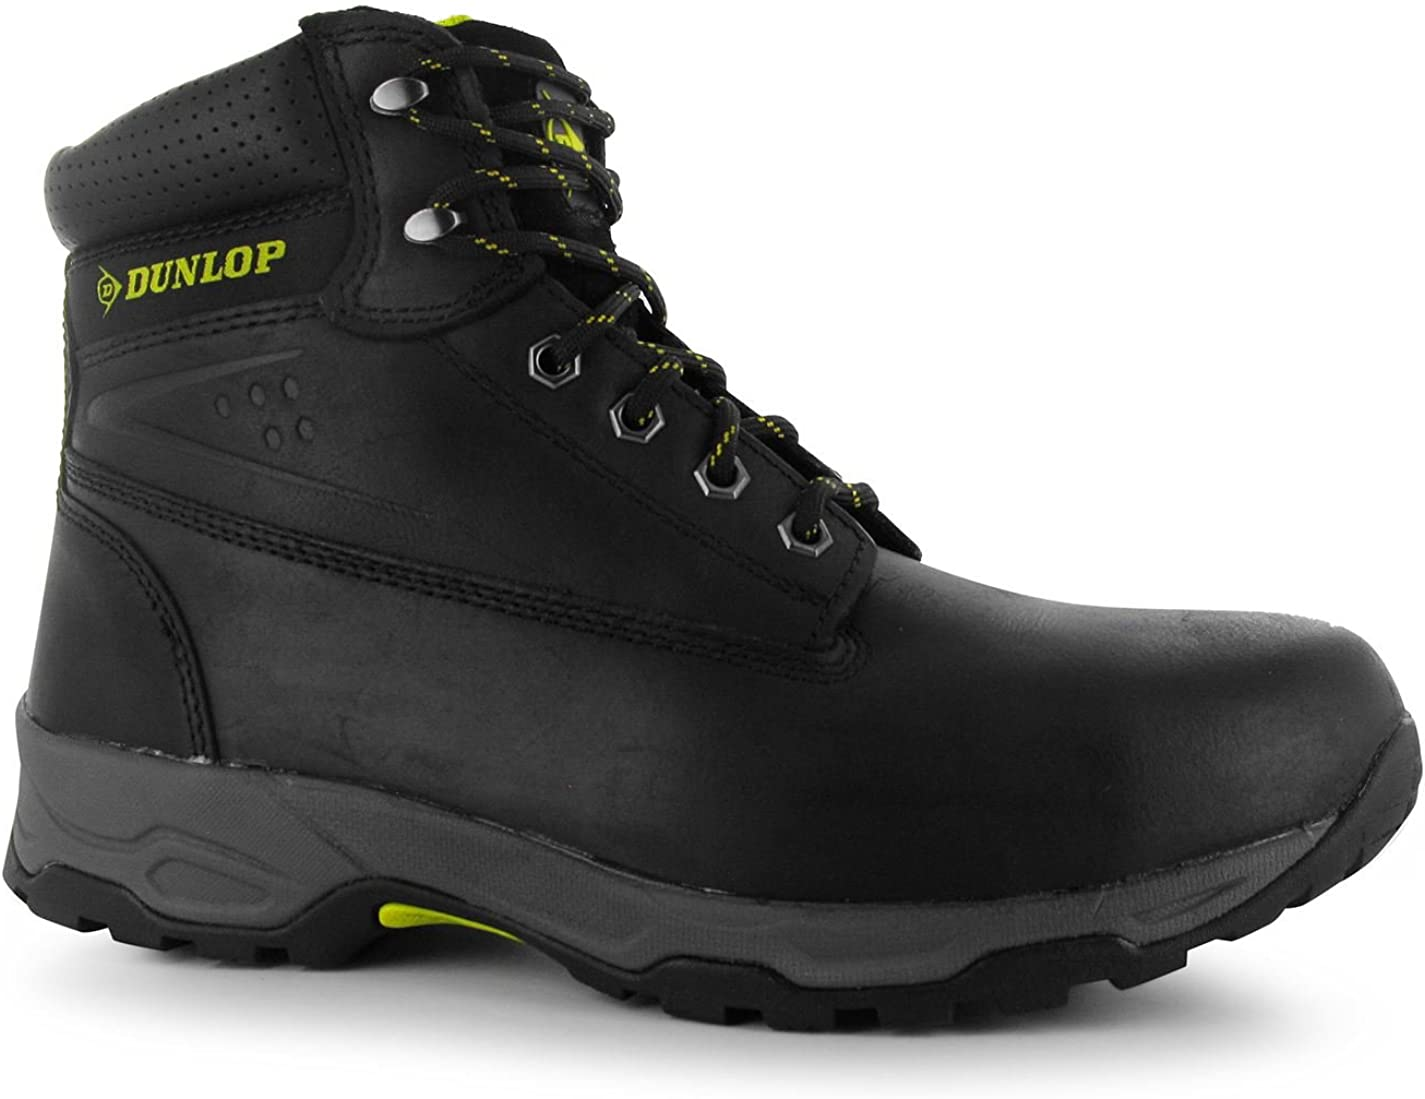 Dunlop Safety On Site Boots Mens Steel